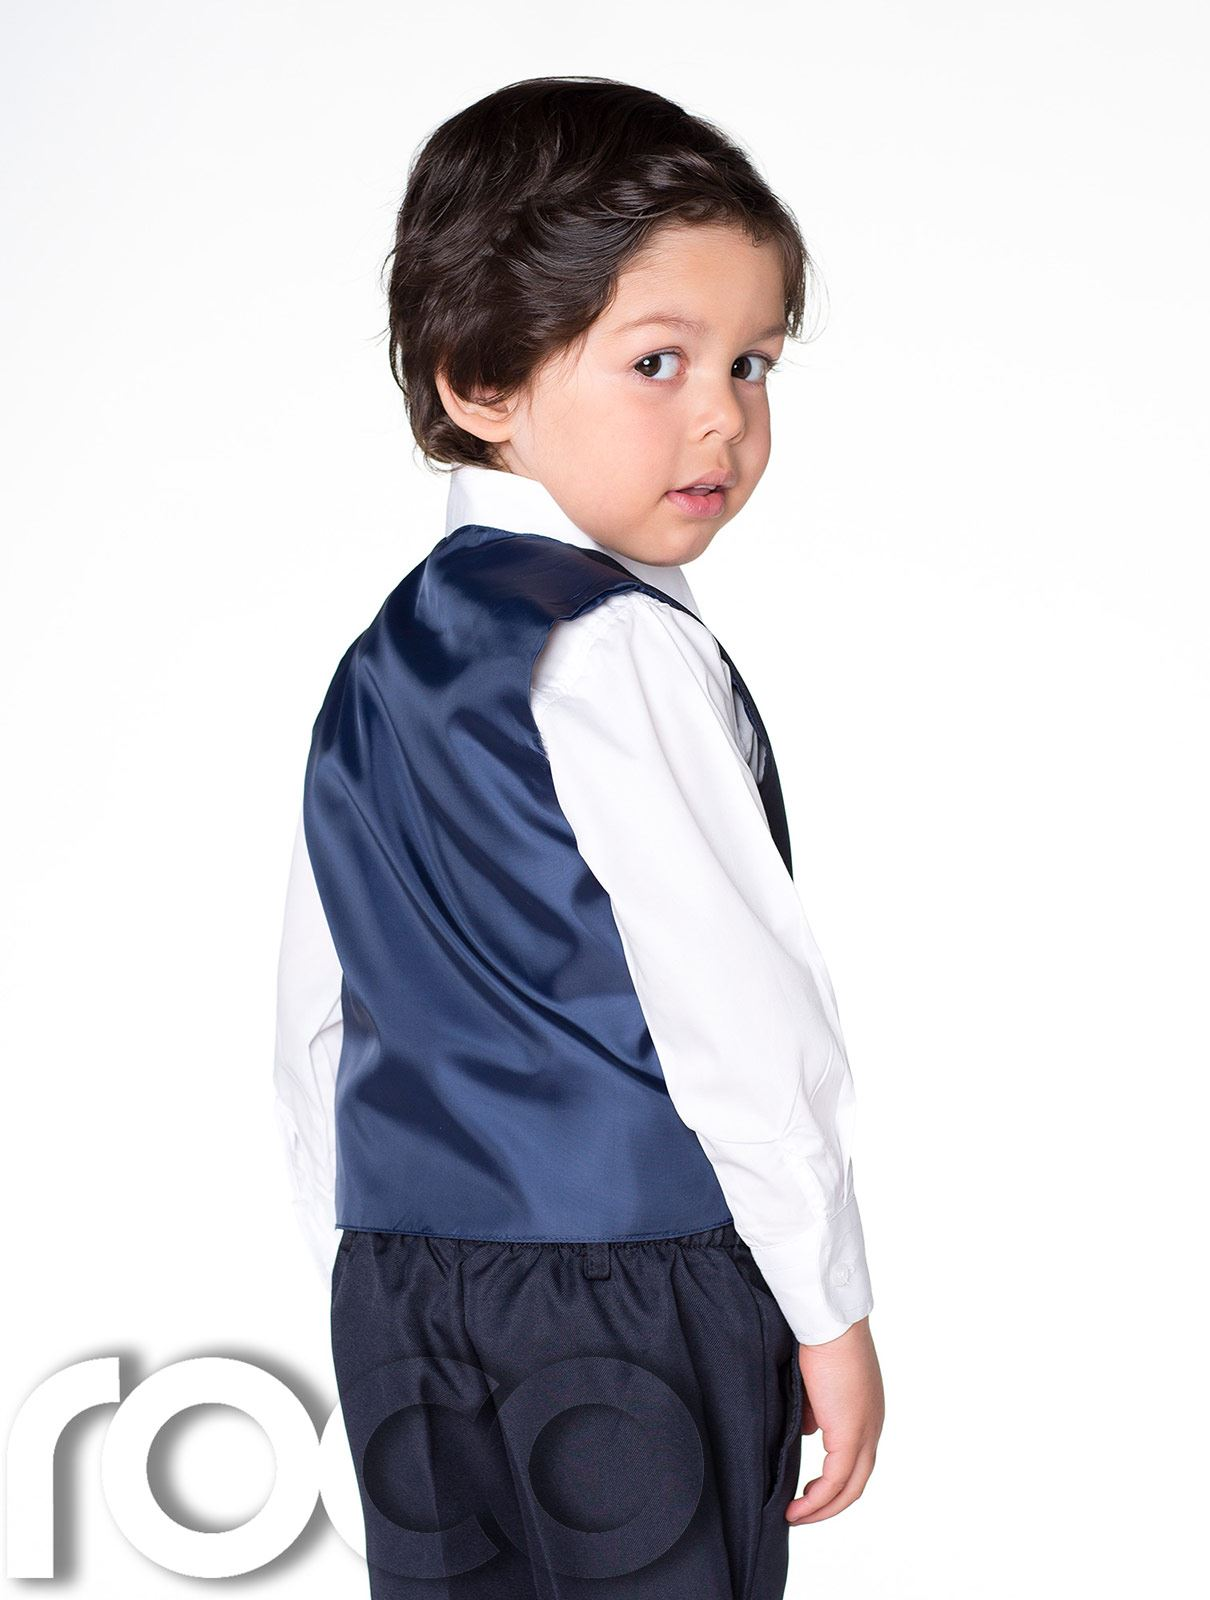 Page-Boy-Suits-Boys-Waistcoat-Suit-Boys-suits-Navy-Suit-Grey-Suit-Blue-Suit thumbnail 13